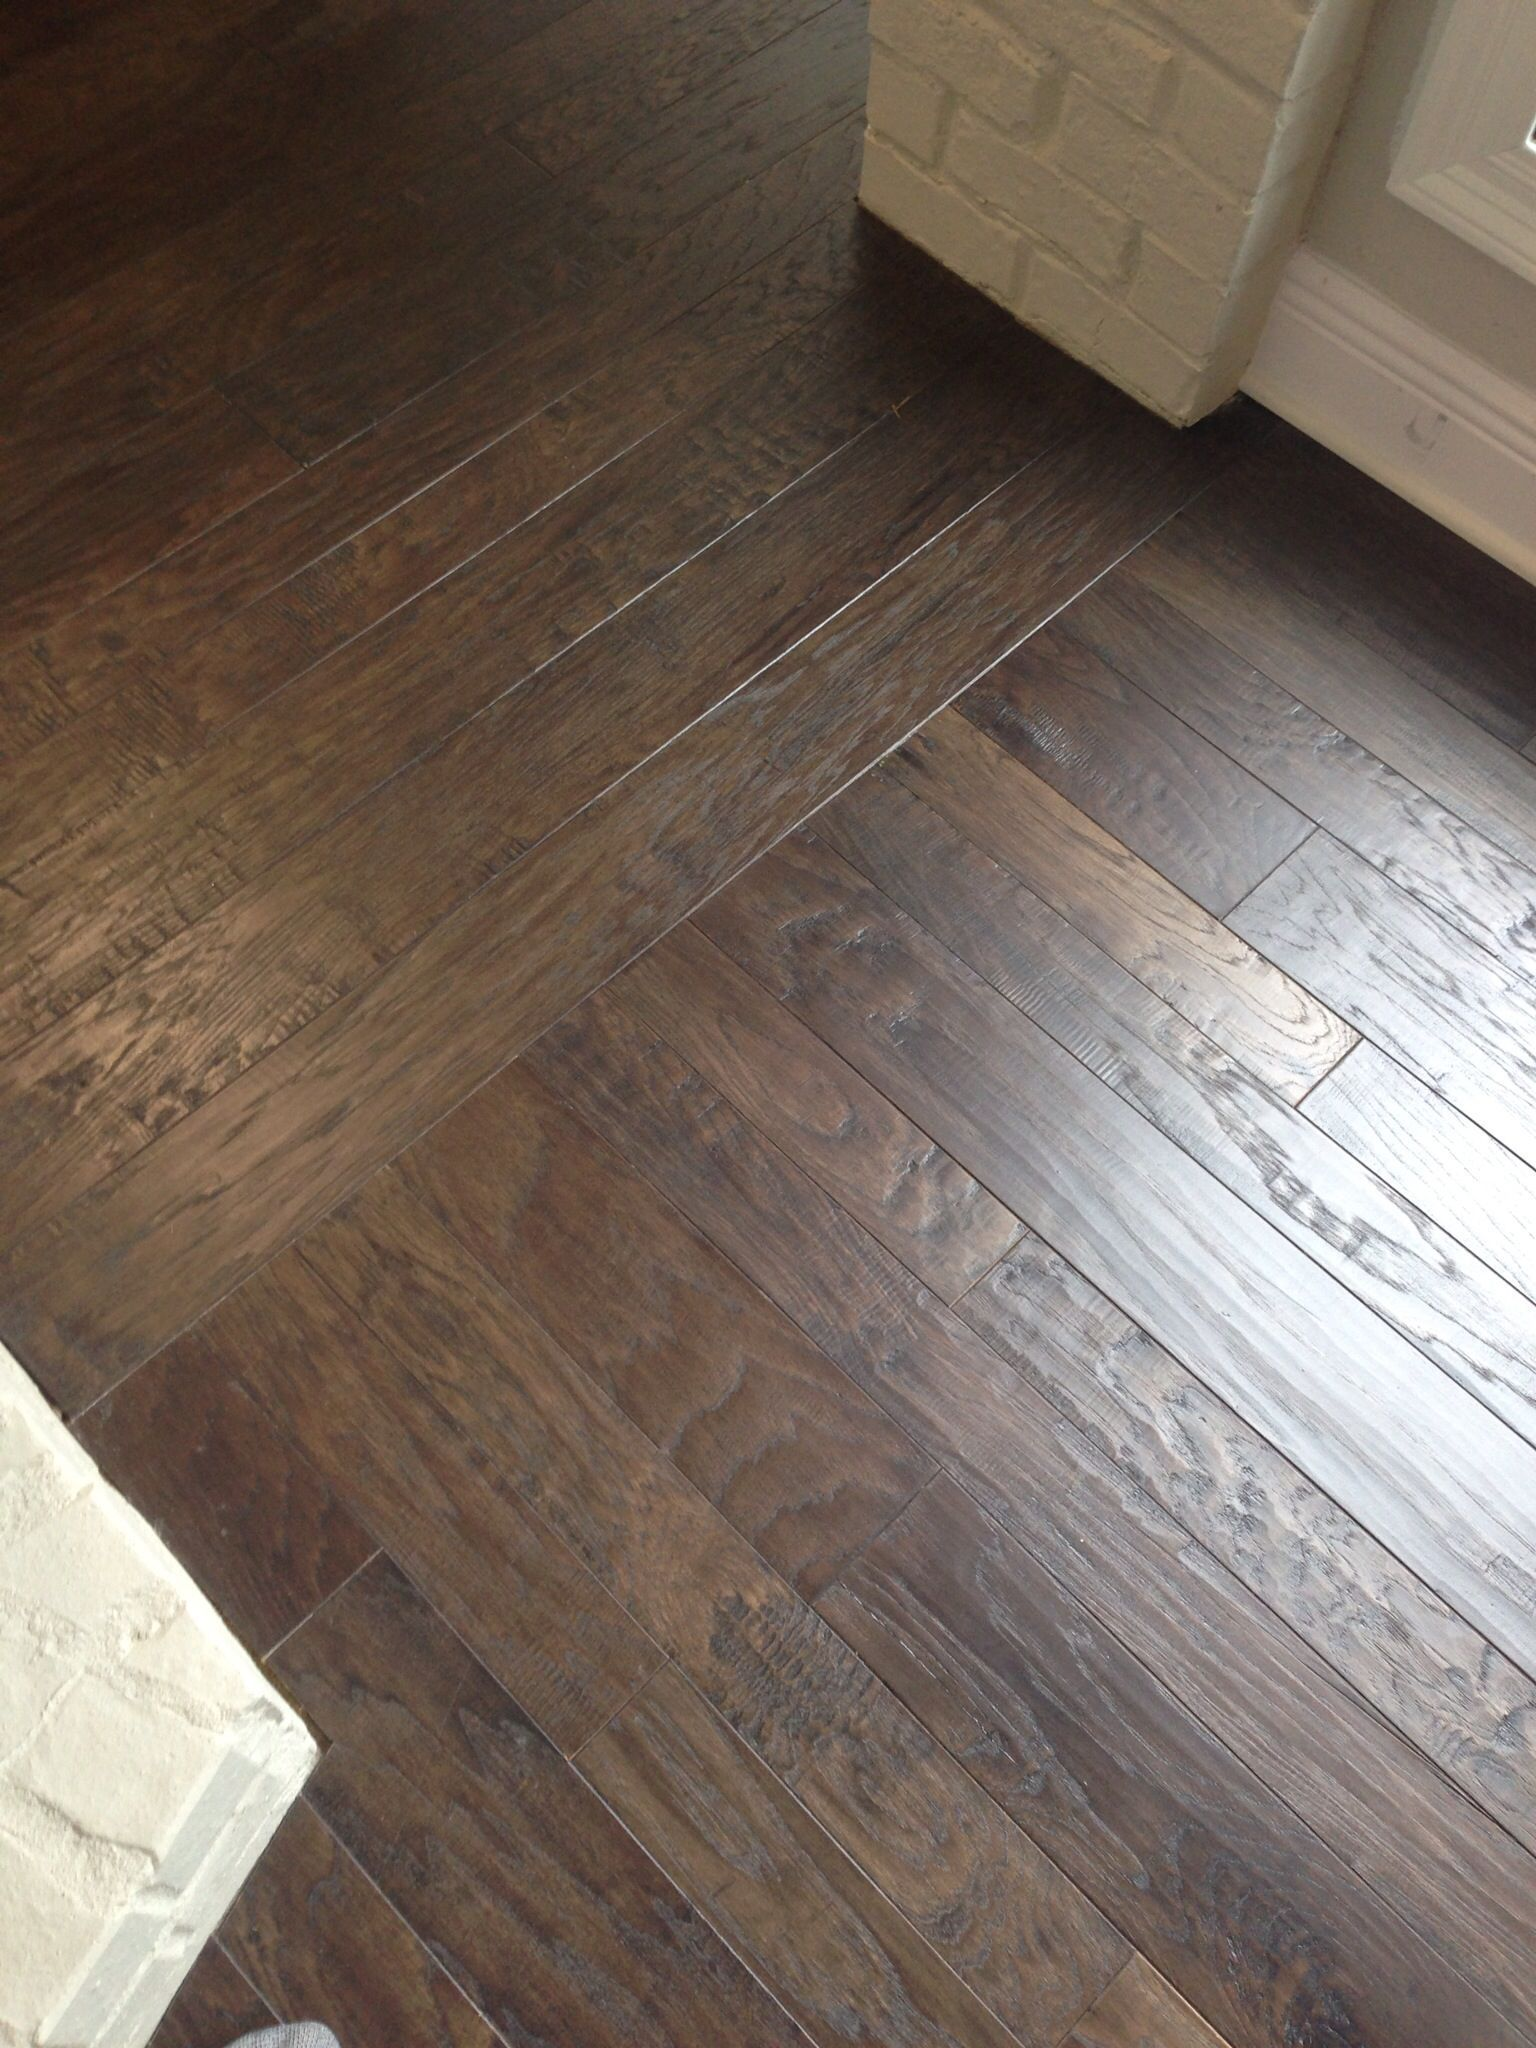 Best Of Flooring Direction Change And Description Laying Hardwood Floors Wood Floors Wide Plank Laying Wood Floors